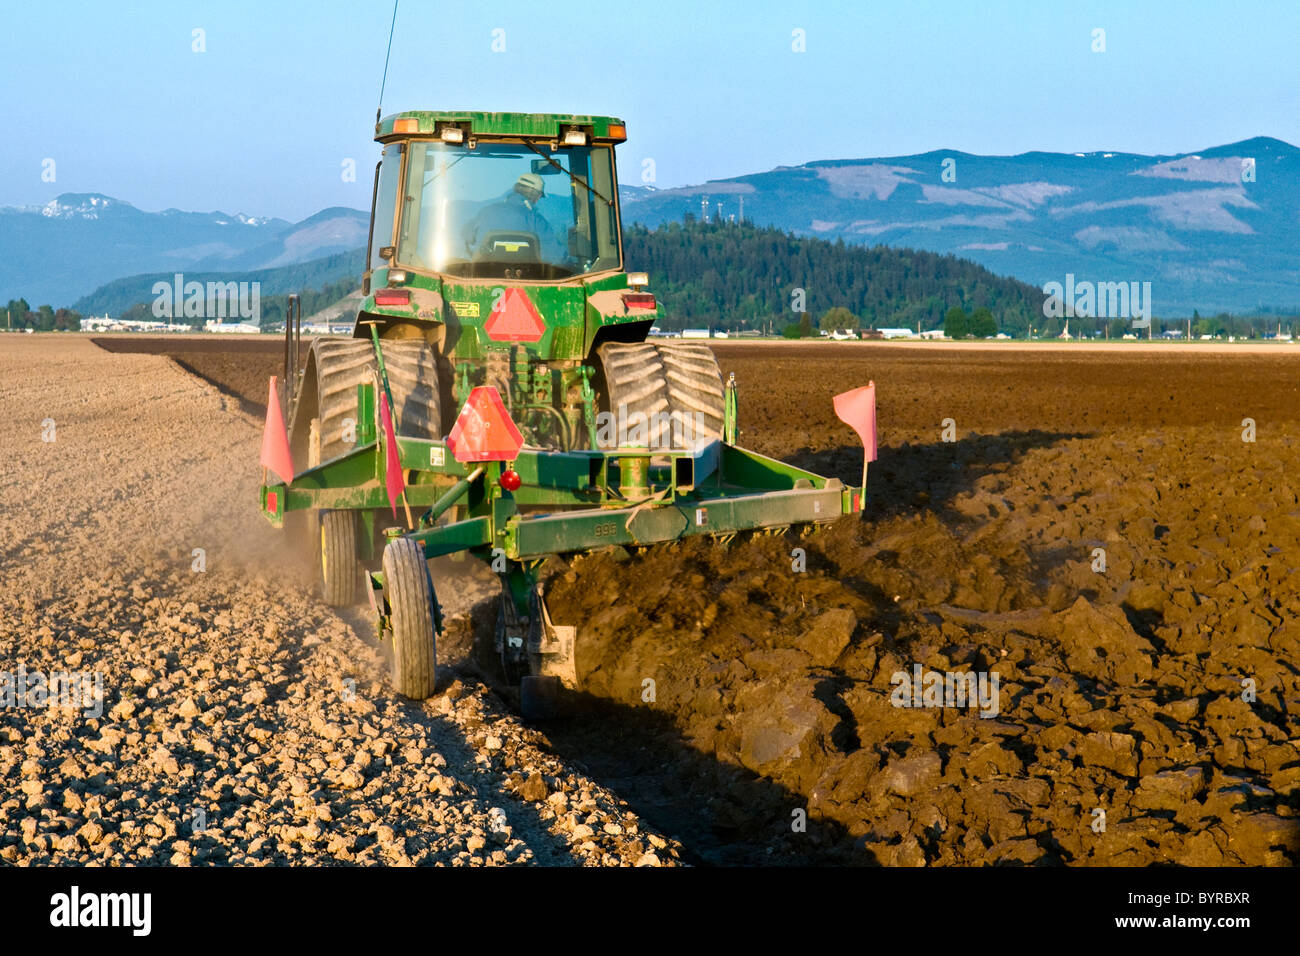 A John Deere tracked tractor pulling a reversible plow prepares a field for planting potatoes / near Burlington, - Stock Image